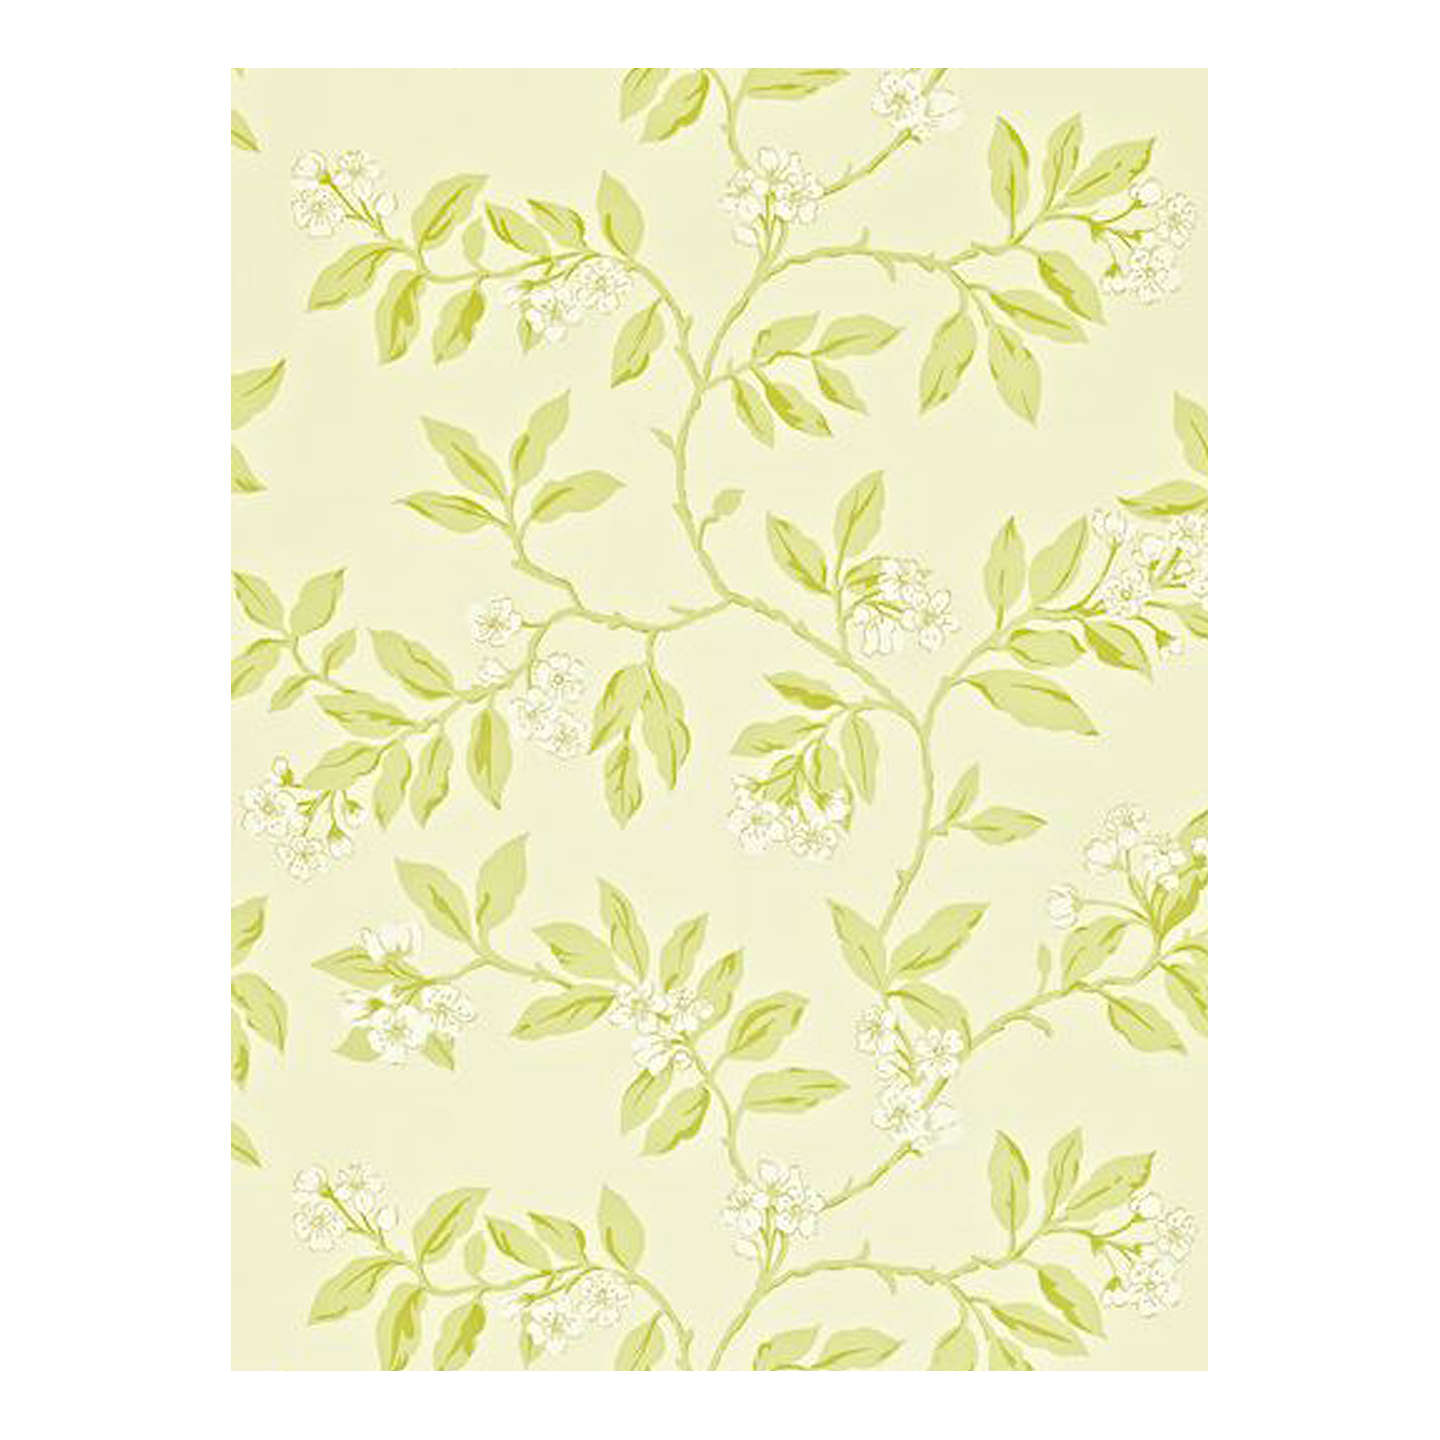 BuySanderson Blossom Bough Wallpaper, Cream/Sage Online at johnlewis.com